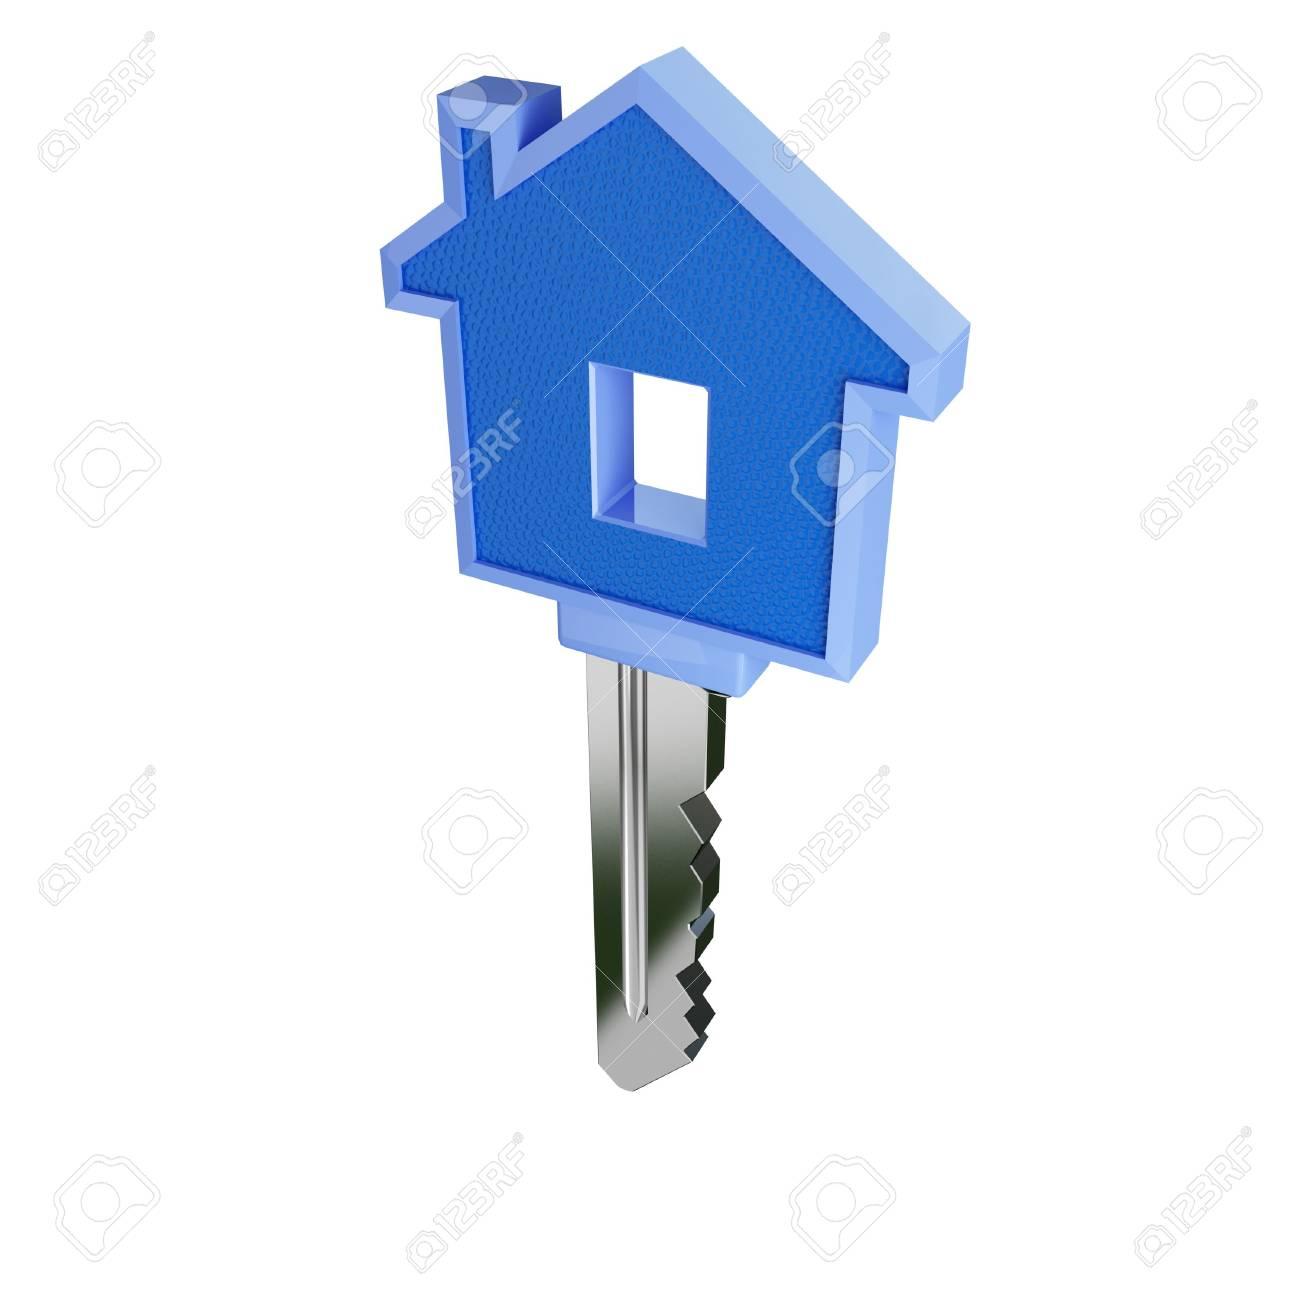 fine 3d image of isolated key of dreams house Stock Photo - 3127522